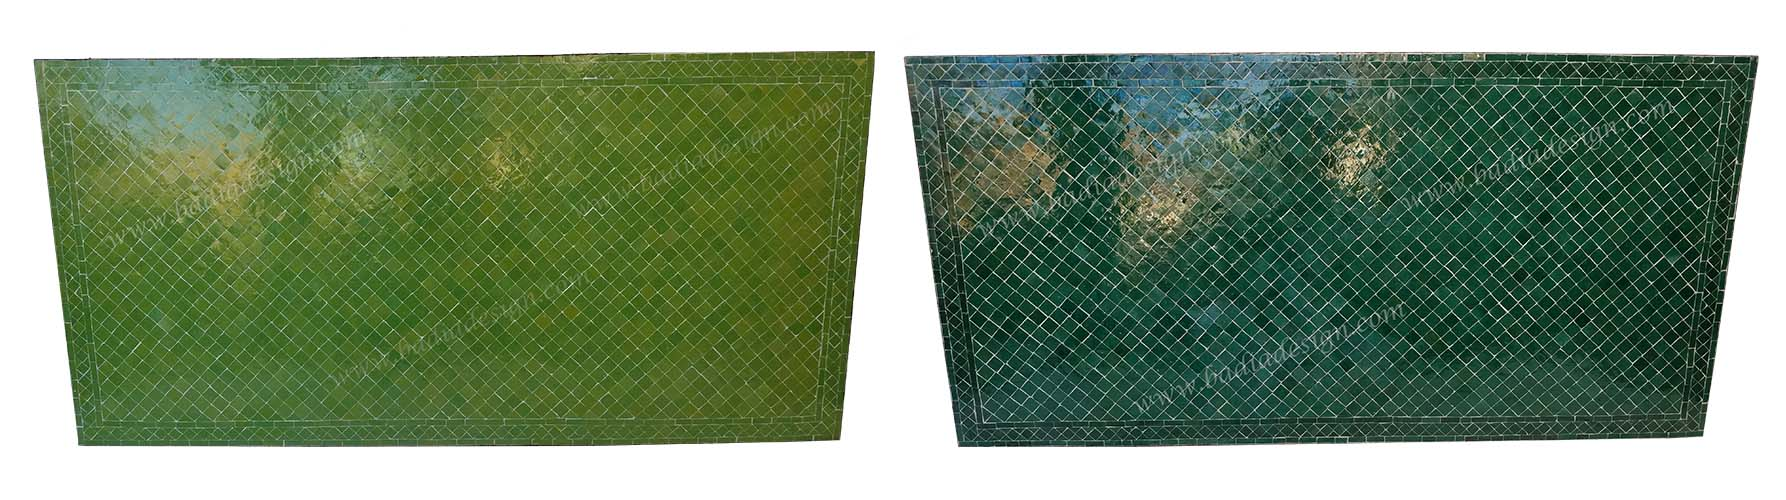 moroccan-green-rectangular-tile-table-mt748.jpg